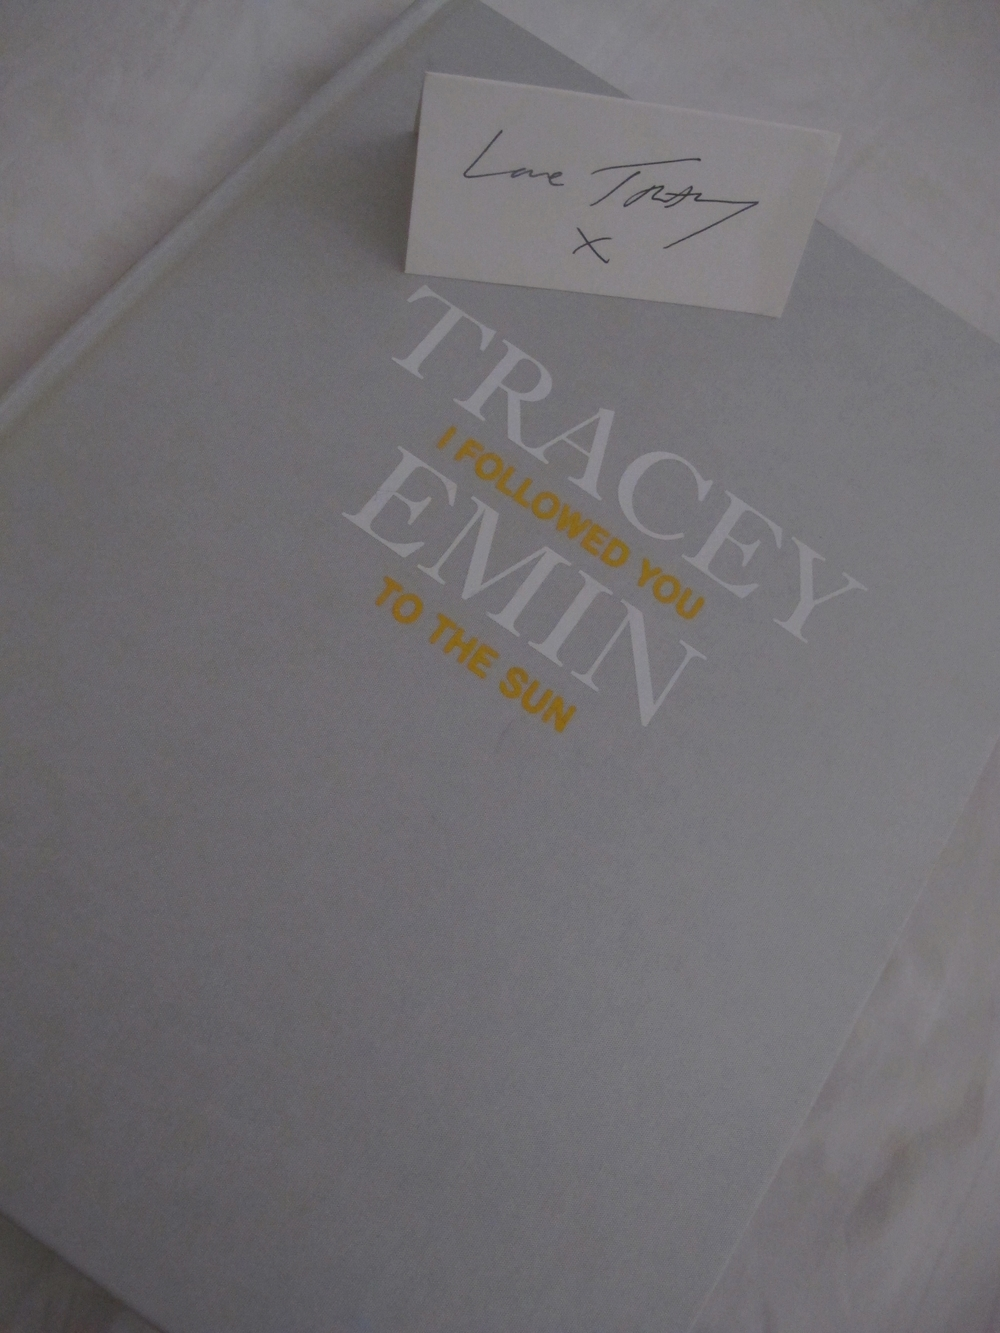 Each of us got a book of the show and our place holders in the table were signed by Tracey on the back